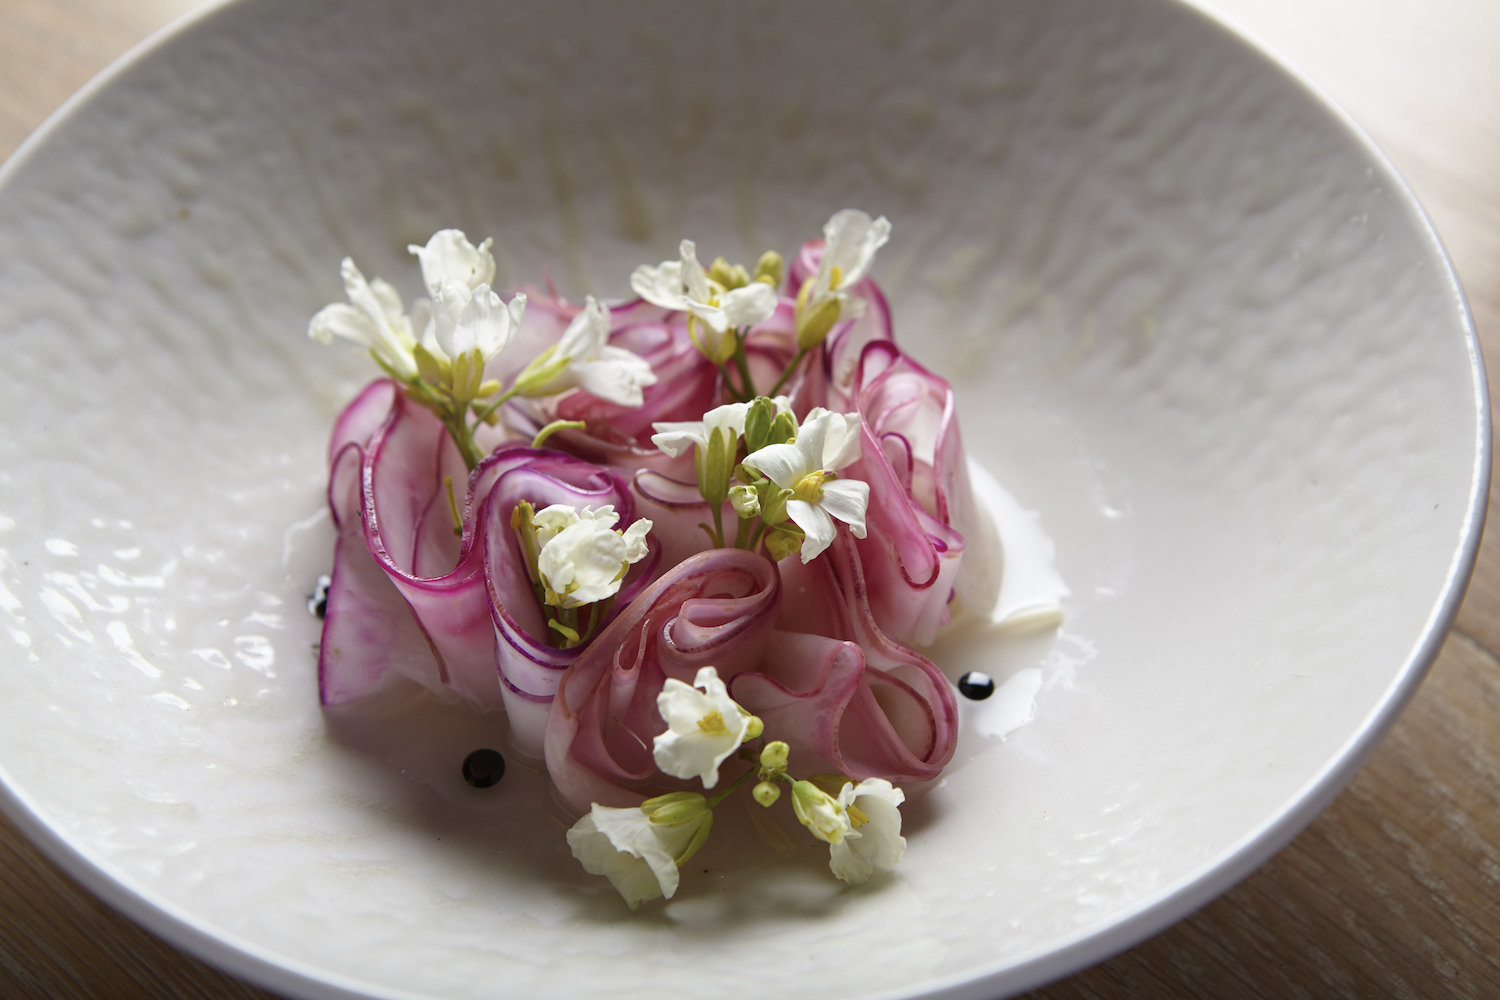 Kohlrabi + Enoki + Fermented Apple copy.jpg